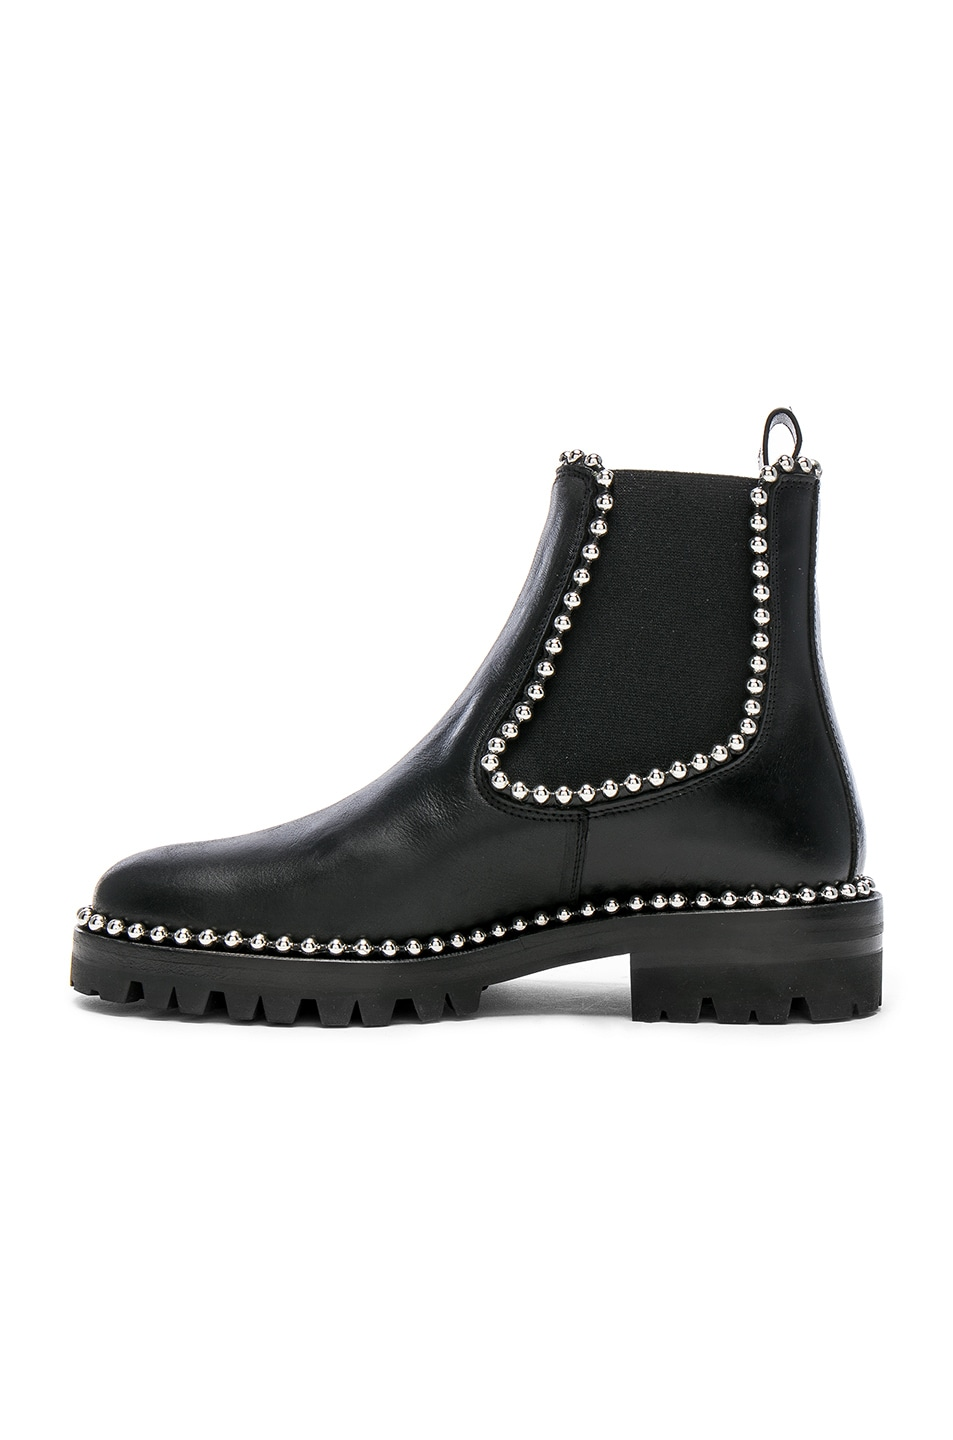 Image 5 of Alexander Wang Spencer Leather Boots in Black